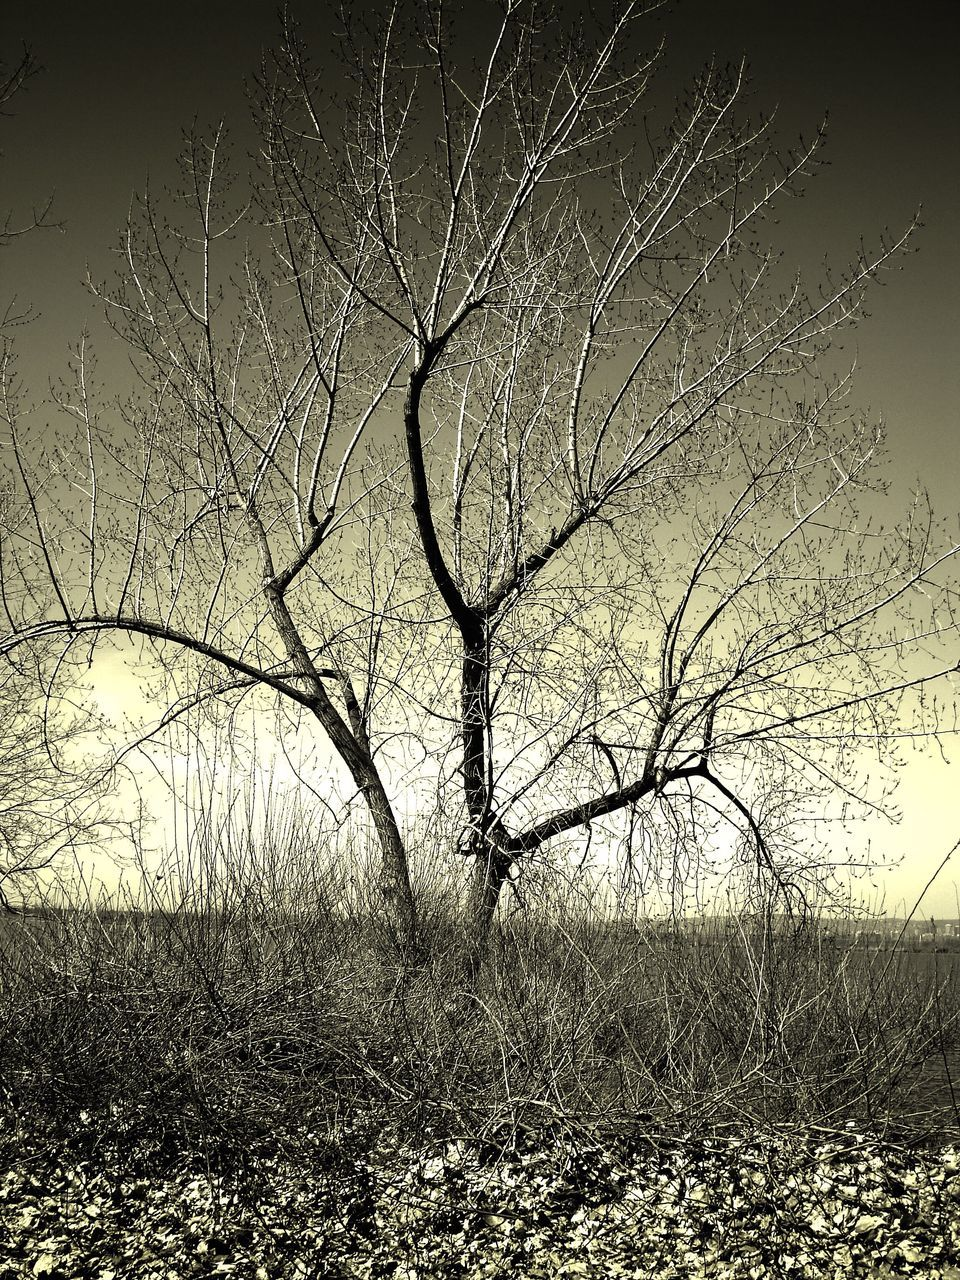 bare tree, branch, tree, landscape, nature, beauty in nature, tranquility, outdoors, no people, scenics, field, night, grass, clear sky, sky